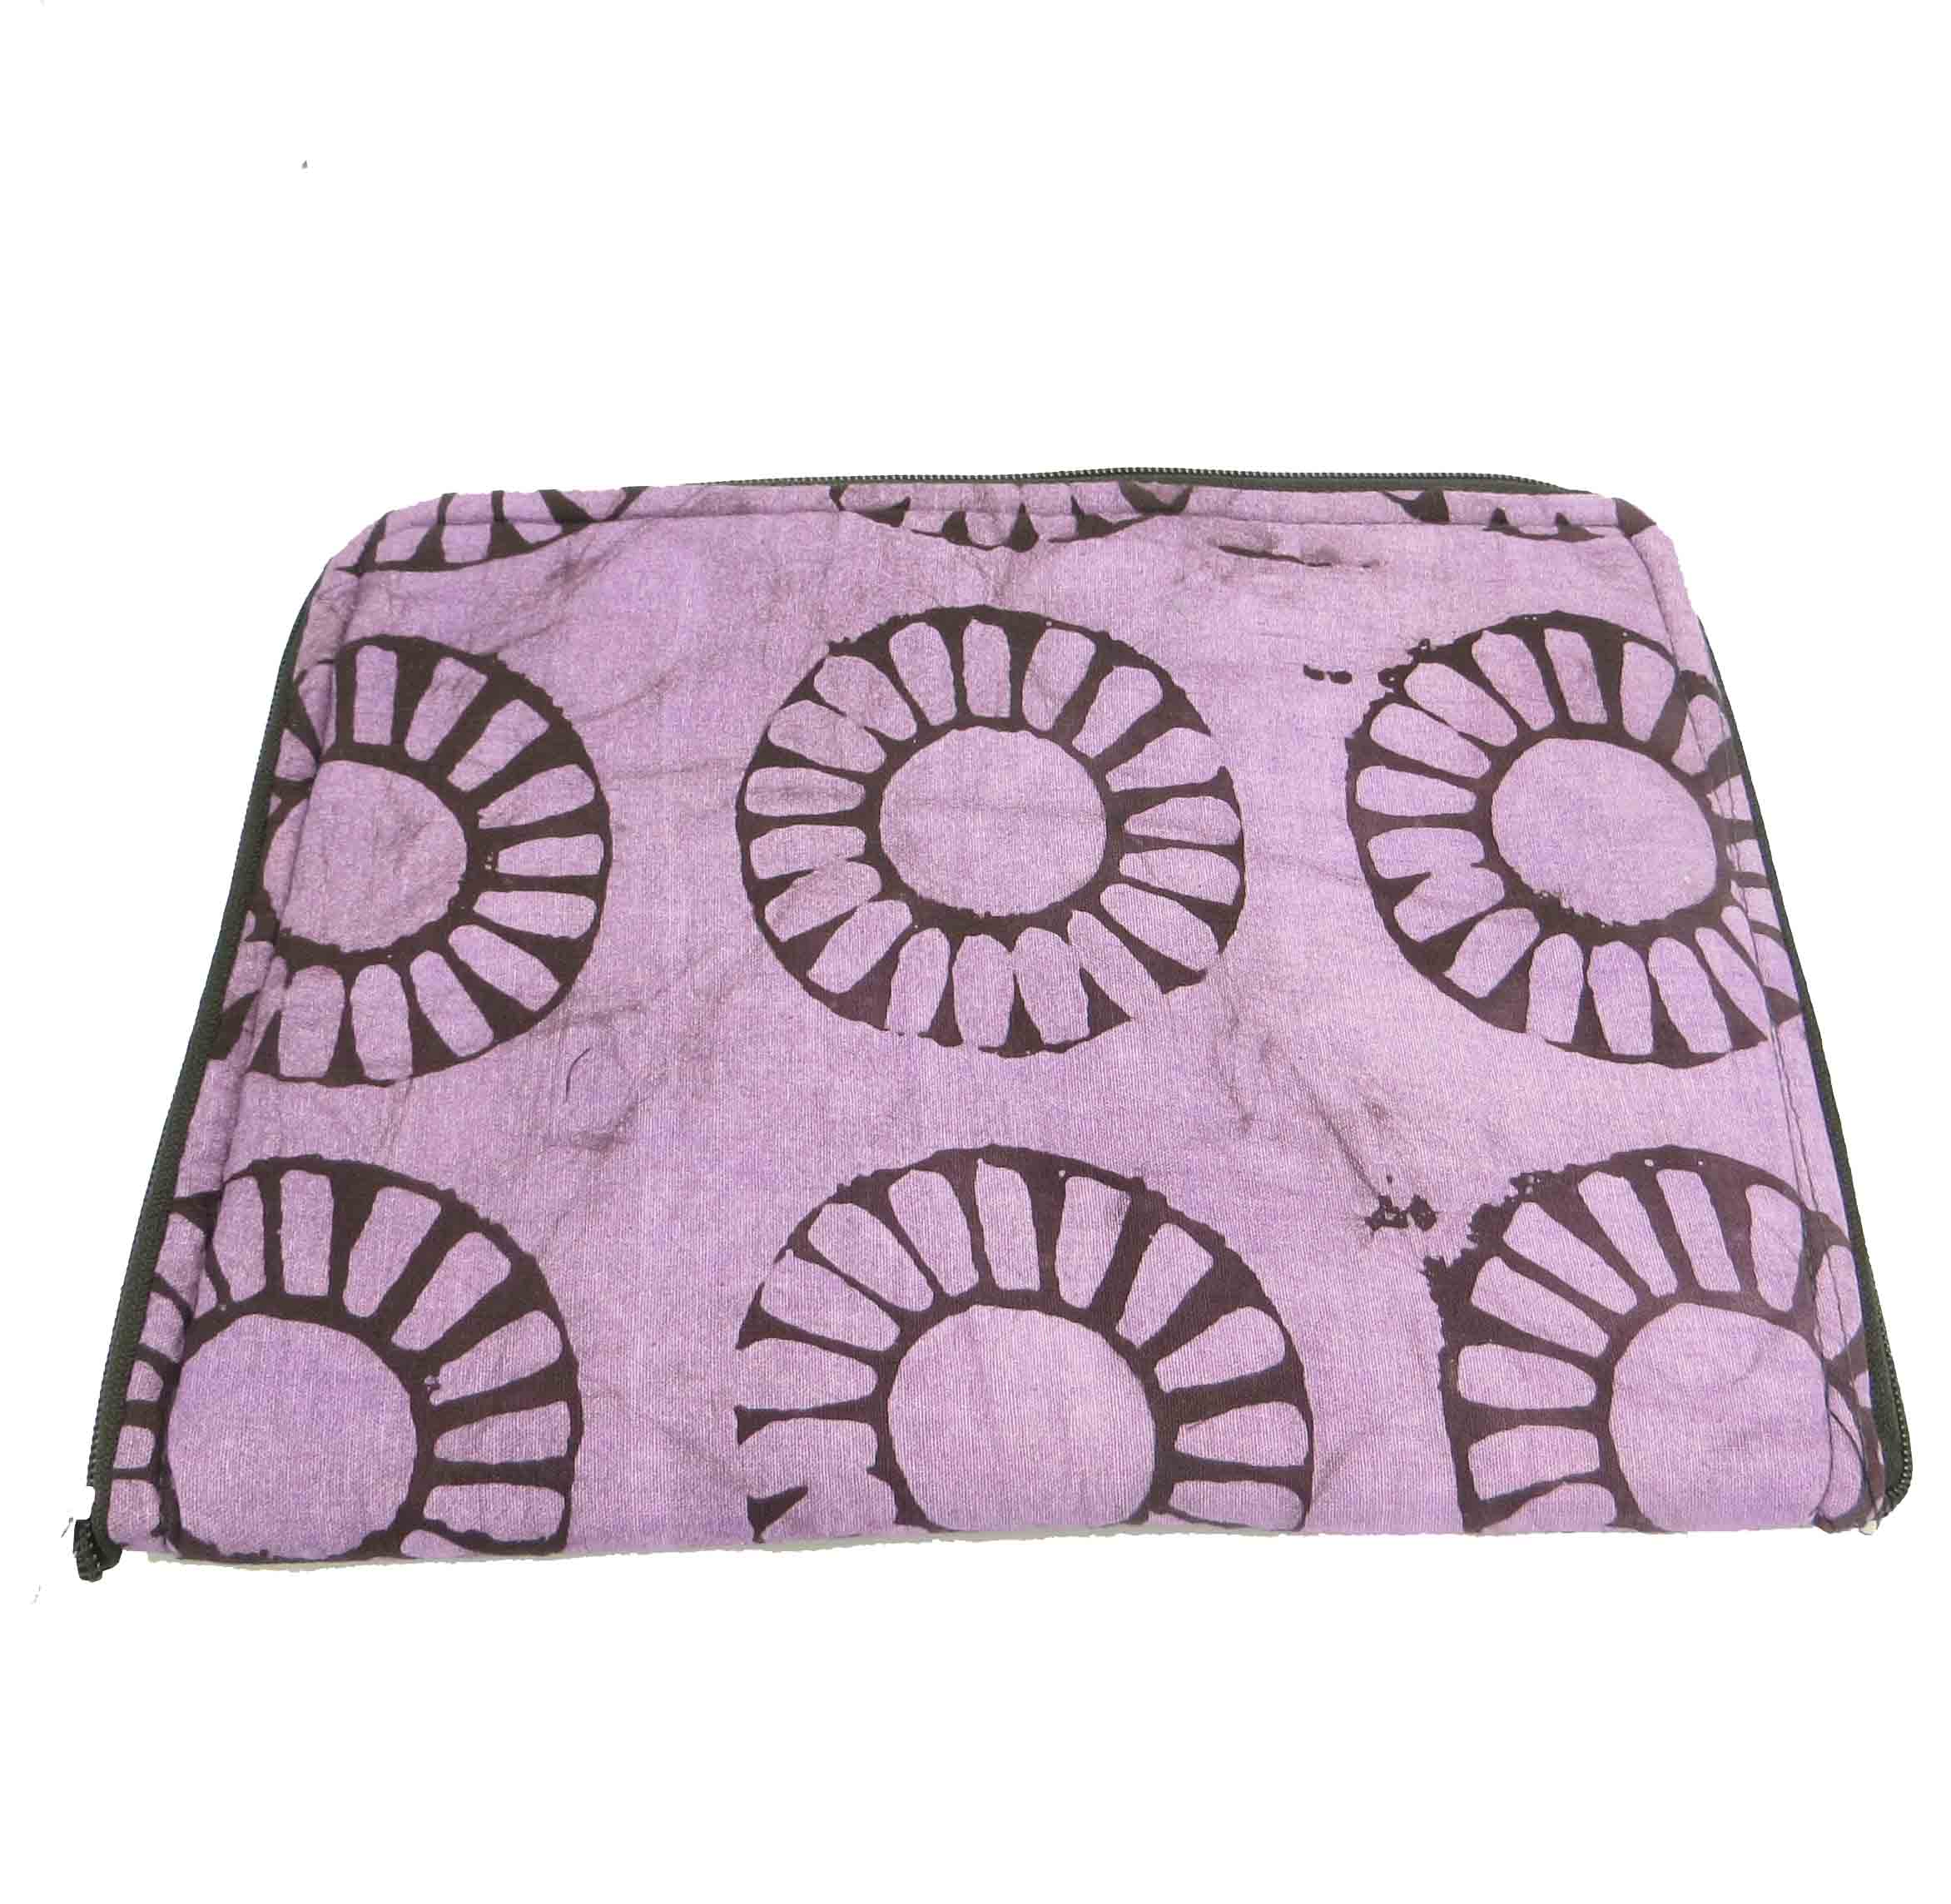 Cloth iPad cover - purple batik